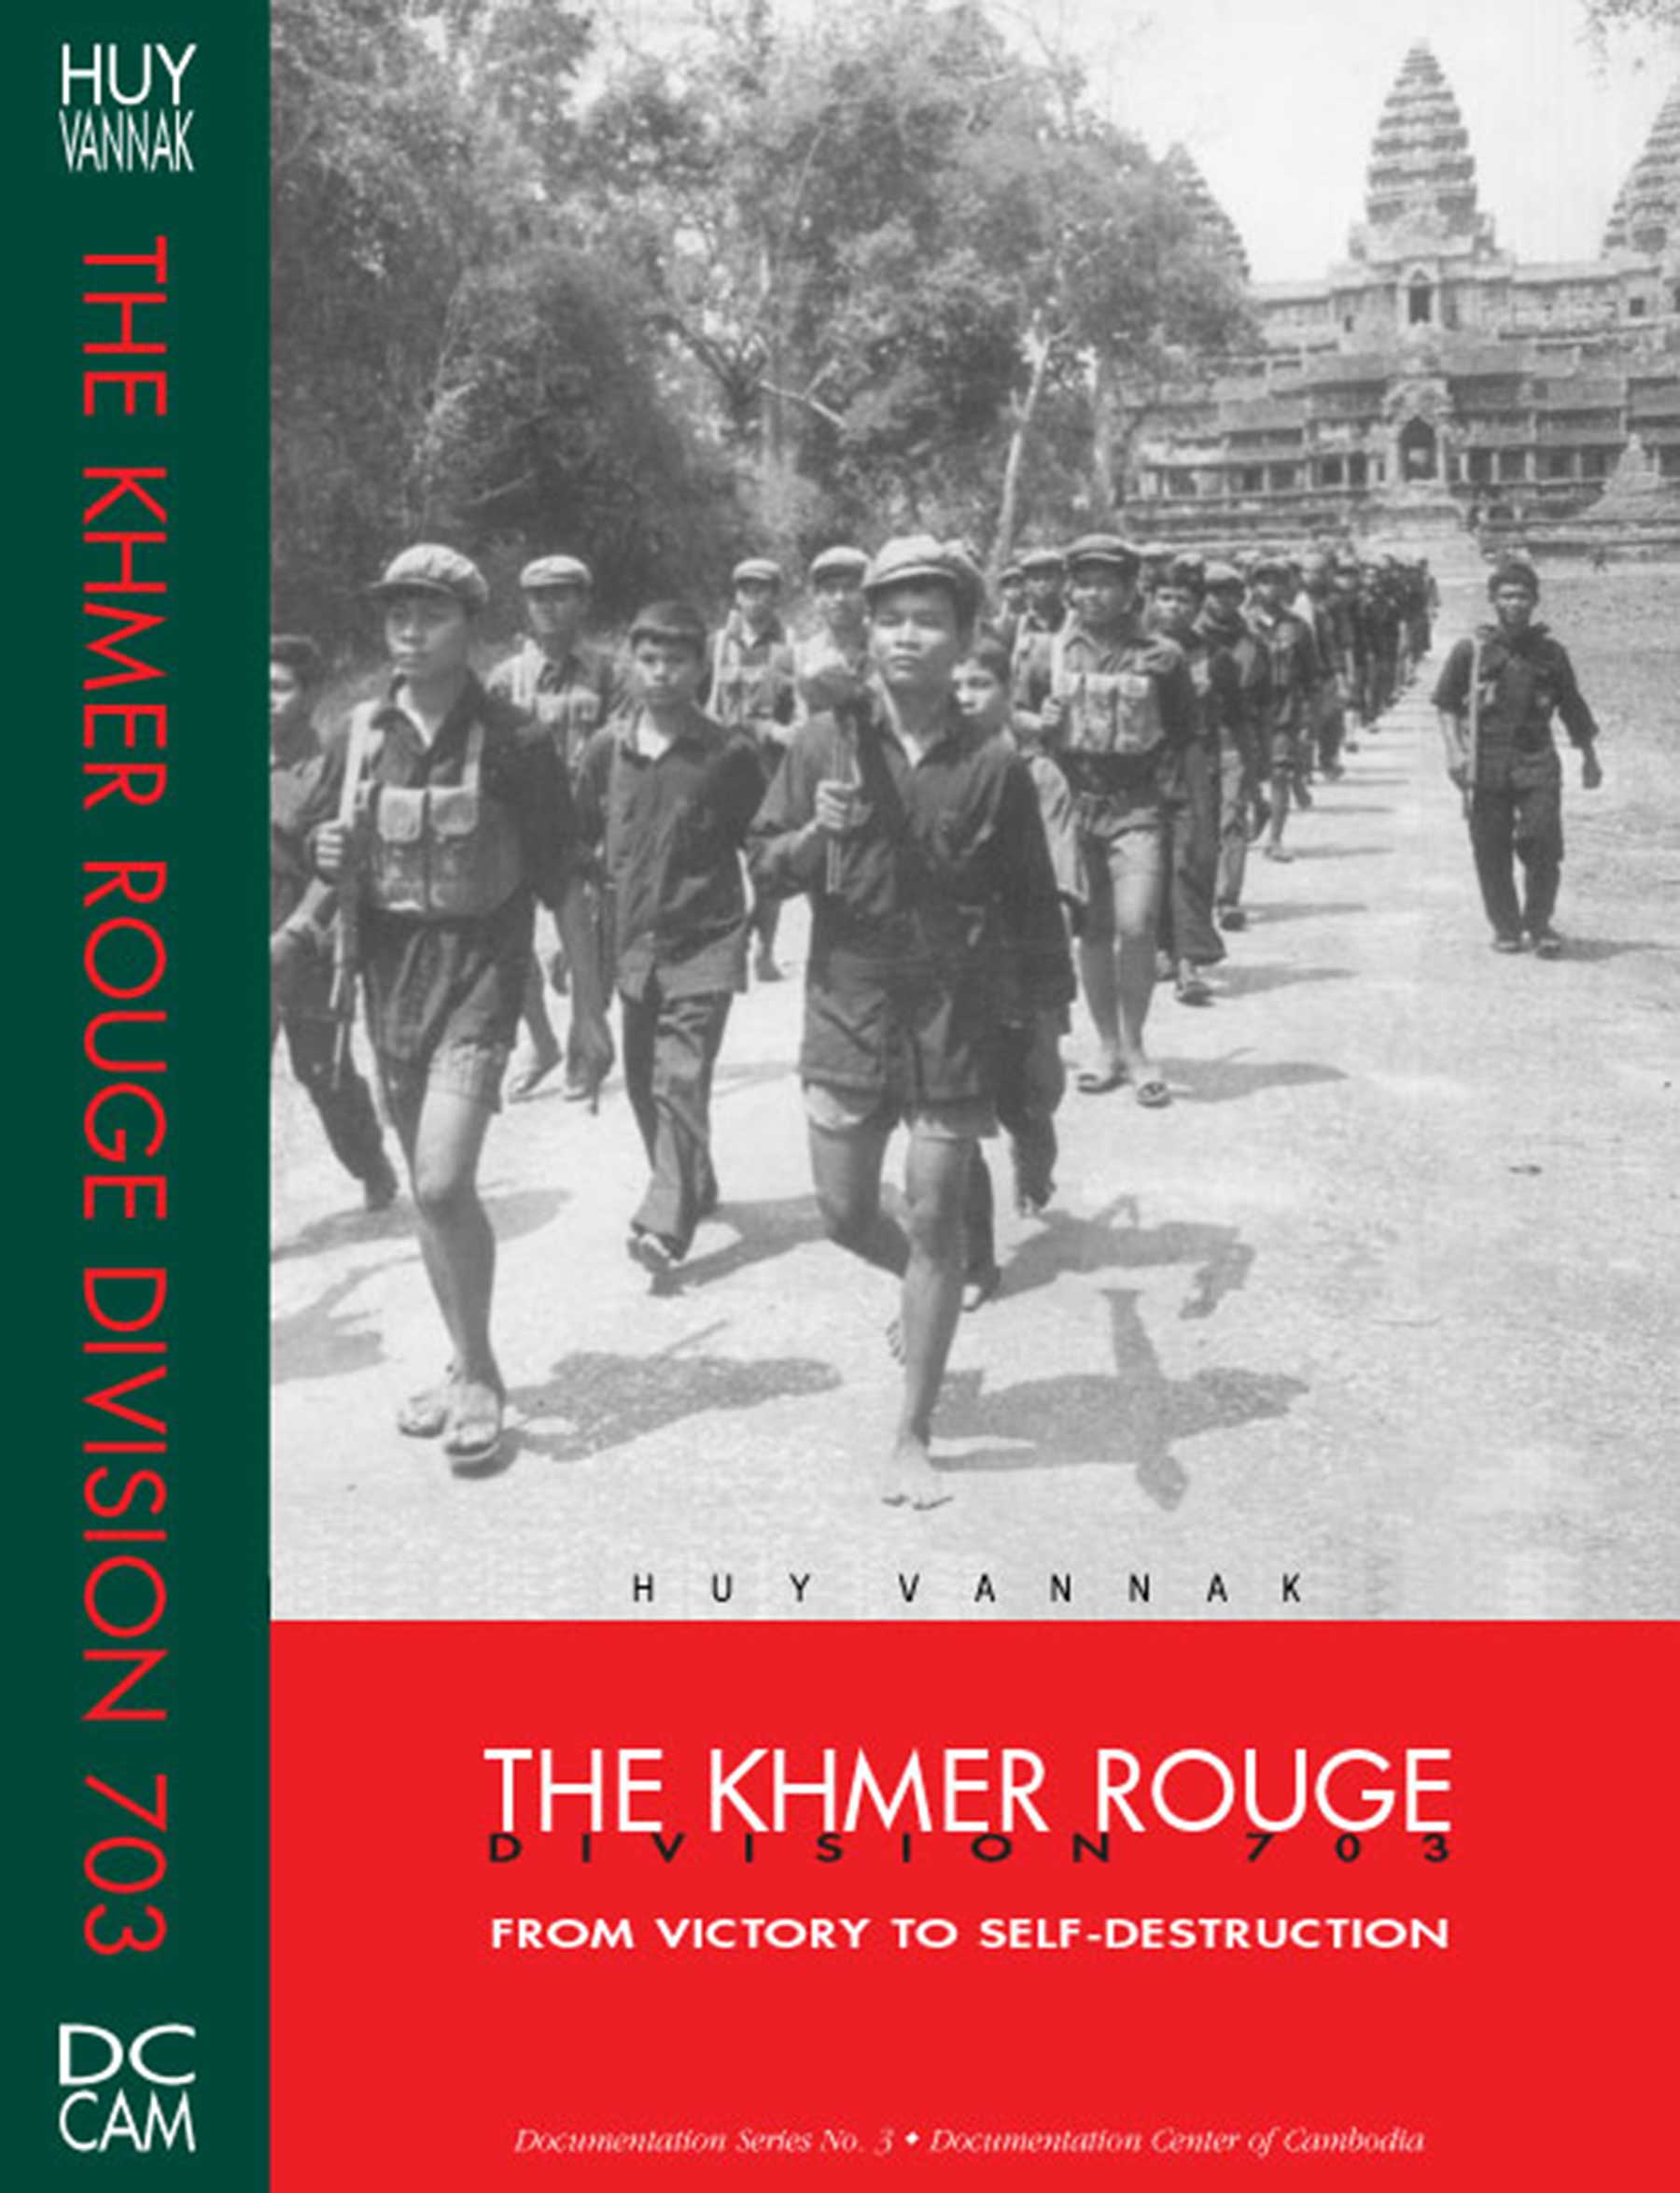 an introduction to the history of the khmer rouge The khmer rouge was a brutal regime that ruled cambodia, under the leadership of marxist dictator pol pot, from 1975 to 1979 pol pot's attempts to create a cambodian master race through.